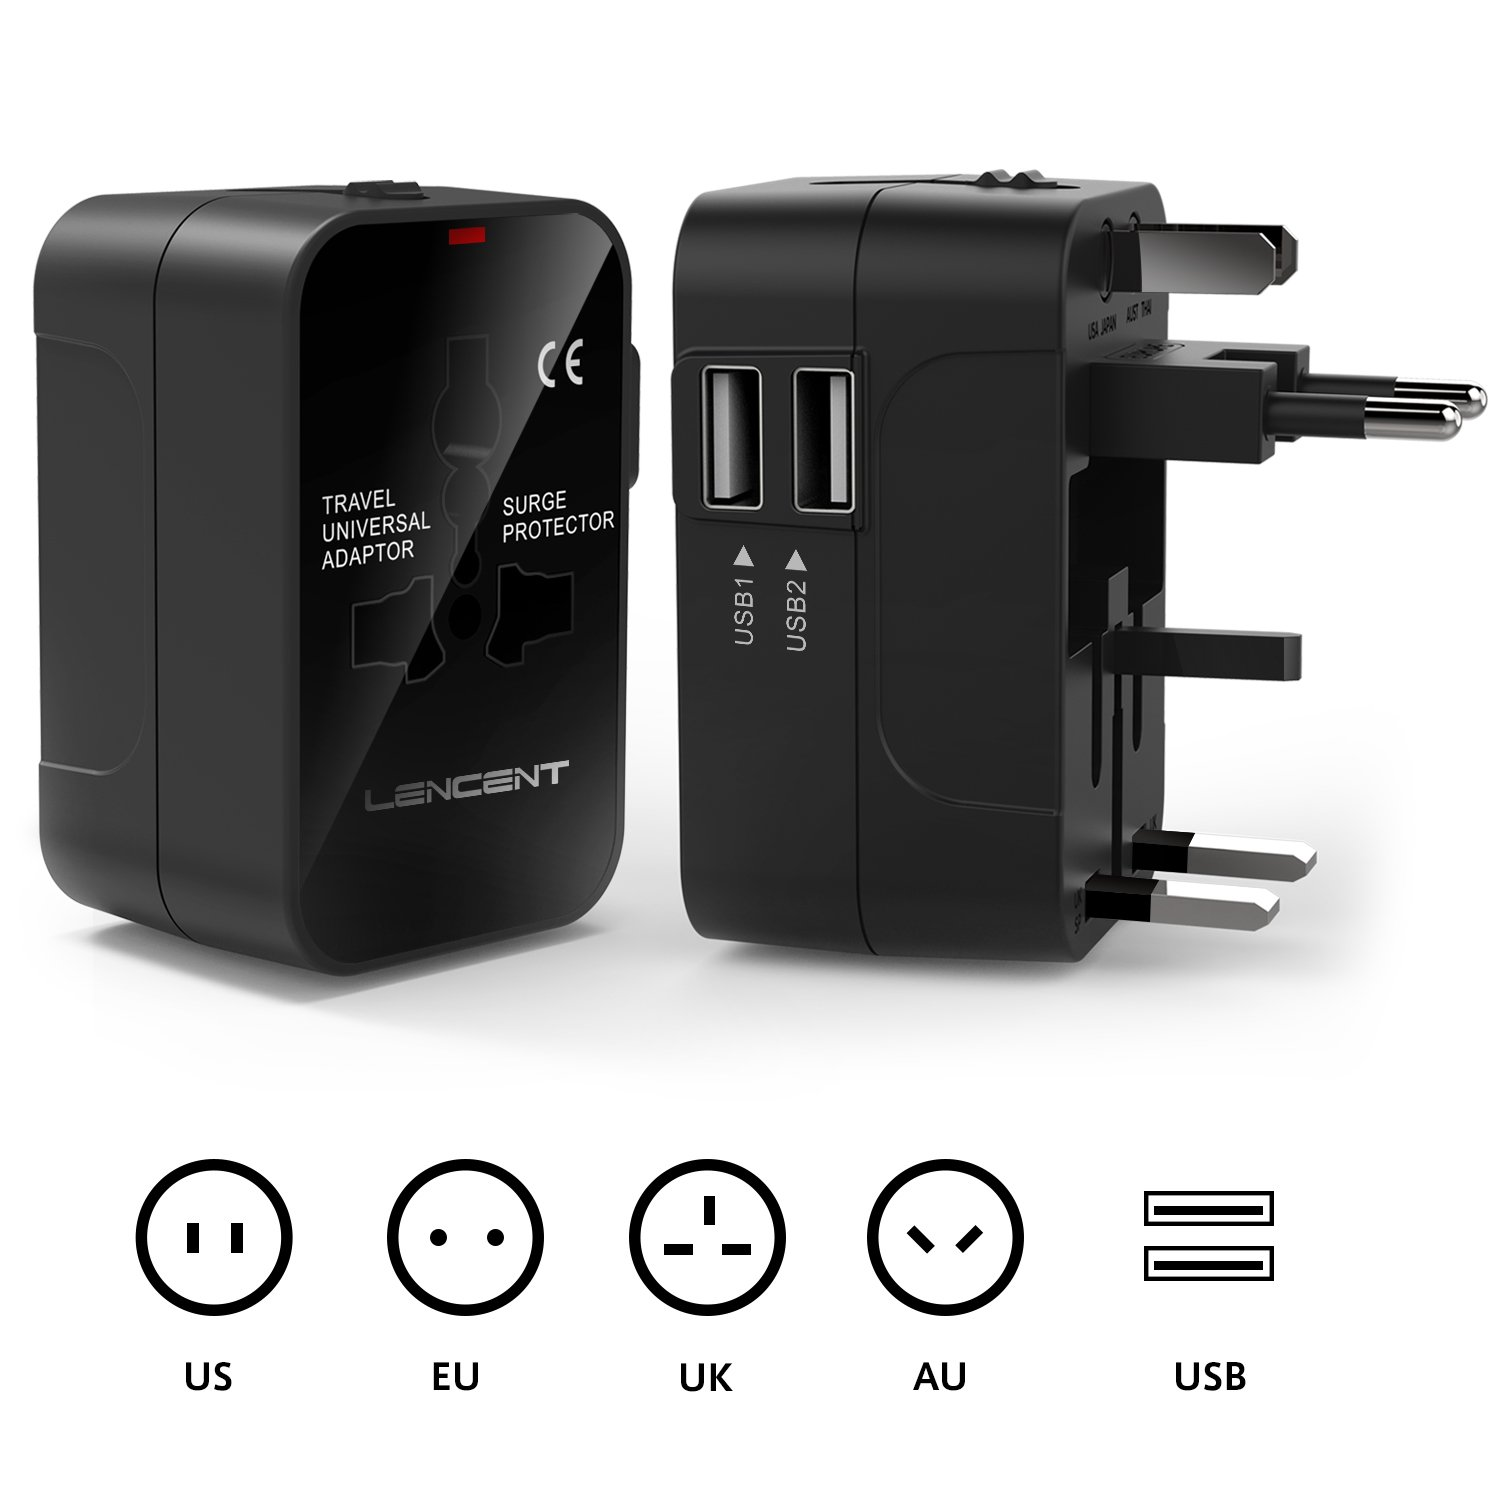 International Travel Adaptor, LENCENT All in One Universal Global Power Adapter with 2 USB Charging Ports Europe UK/USA/EU/AUS Worldwide Wall Plug Charger Converter for Laptops,Phones,Tablets and More